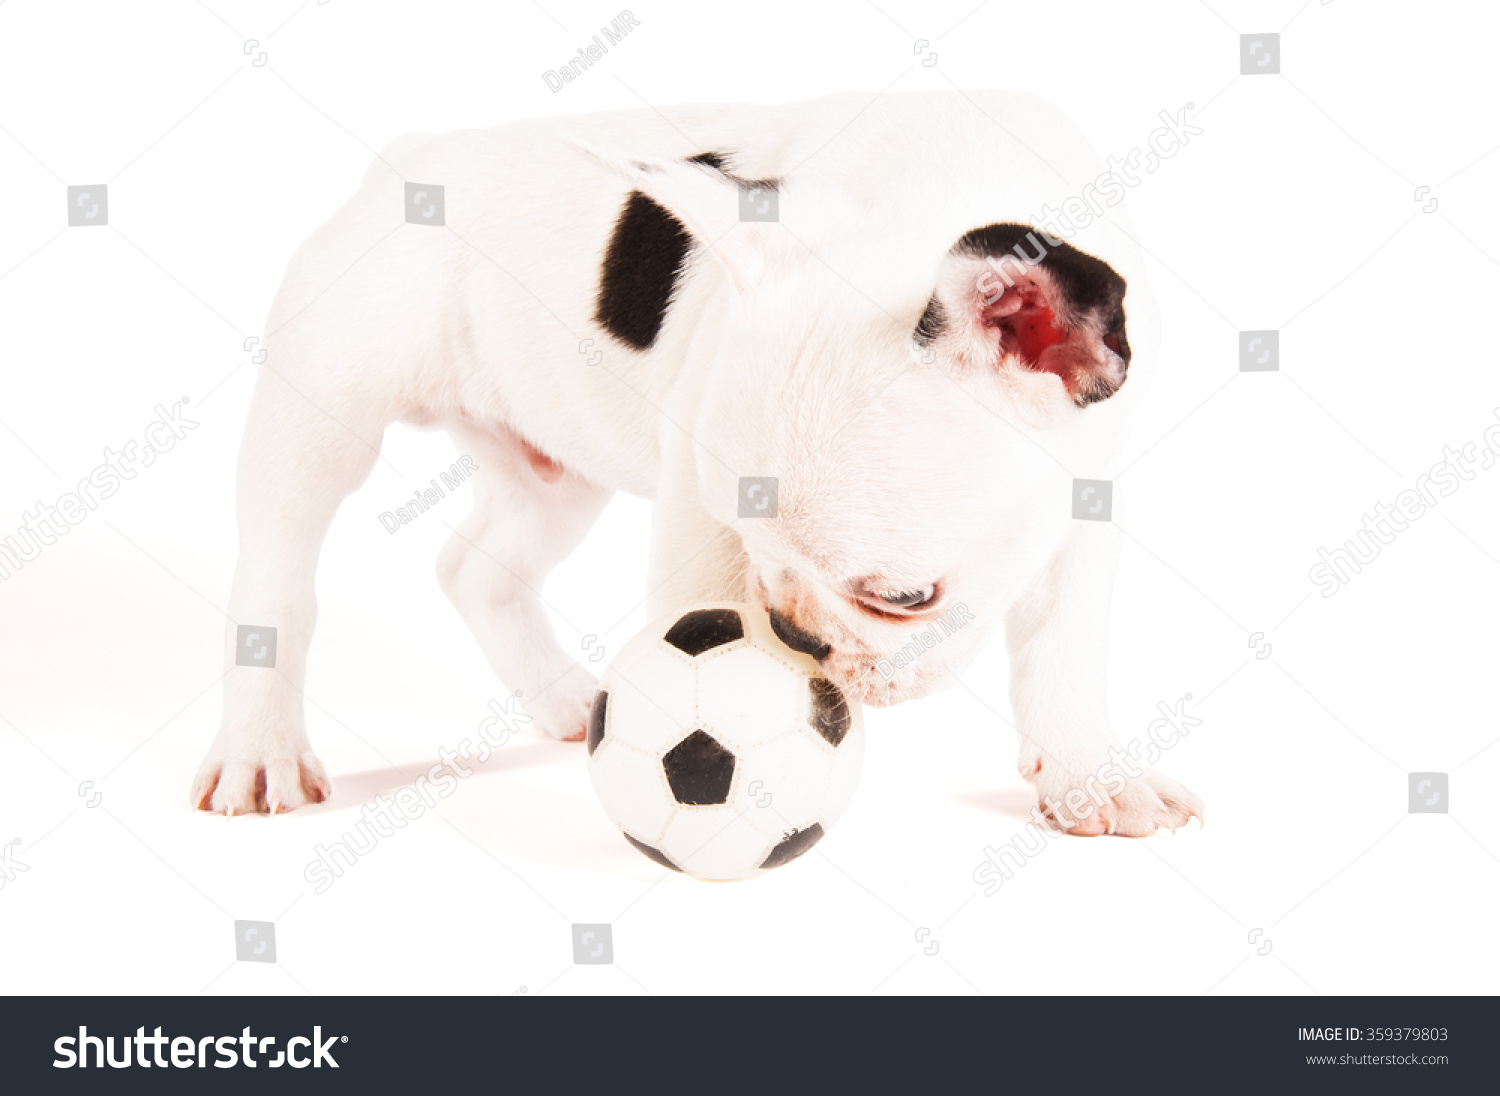 Most Inspiring Bulldog Ball Adorable Dog - stock-photo-adorable-french-bulldog-puppy-playing-with-a-ball-on-white-background-359379803  Gallery_98781  .jpg